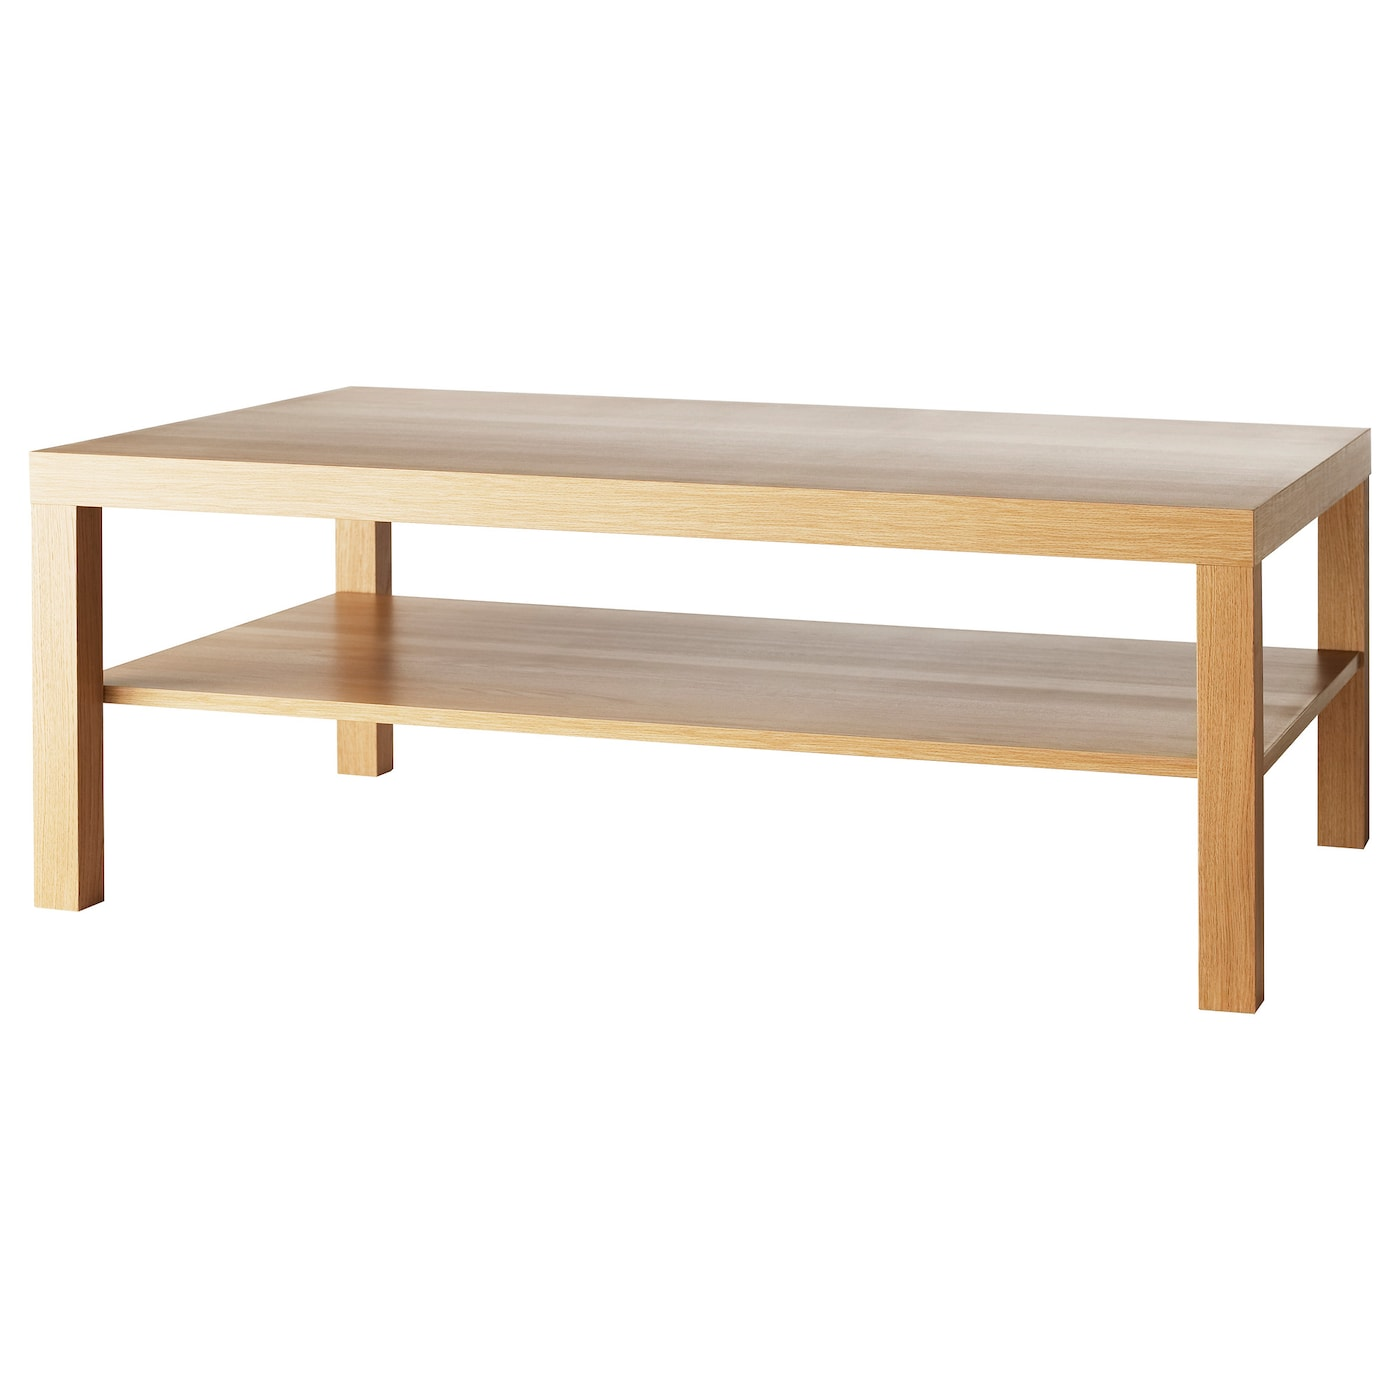 Lack coffee table oak effect 118x78 cm ikea for Ikea end tables salon